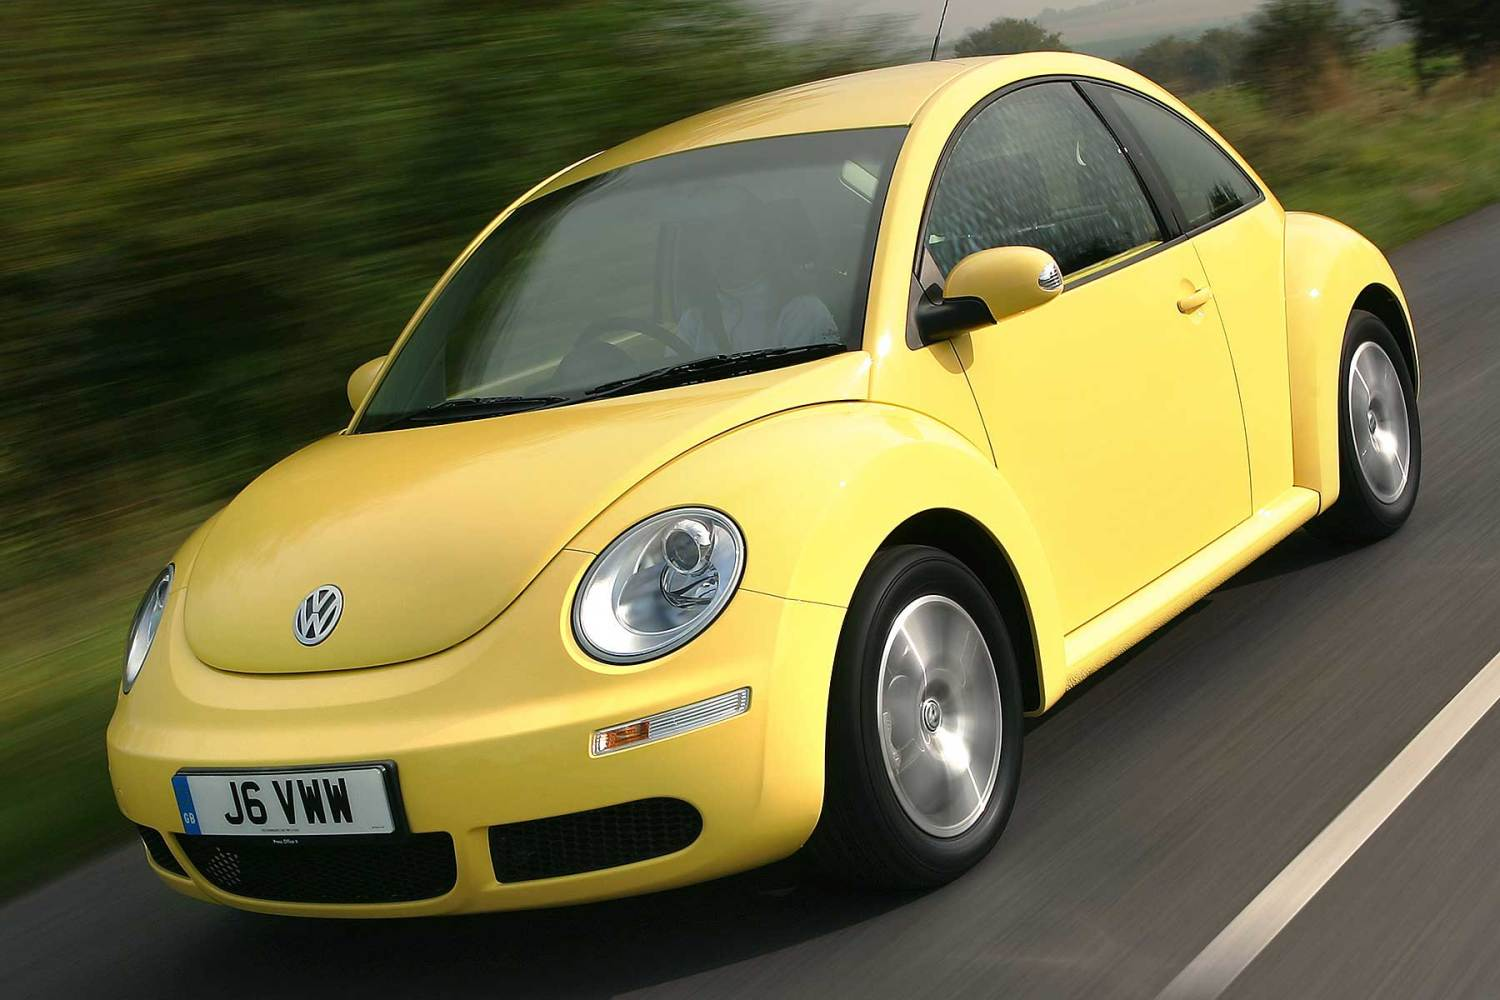 The cheapest cars to insure for 17-18 year olds: Volkswagen Beetle